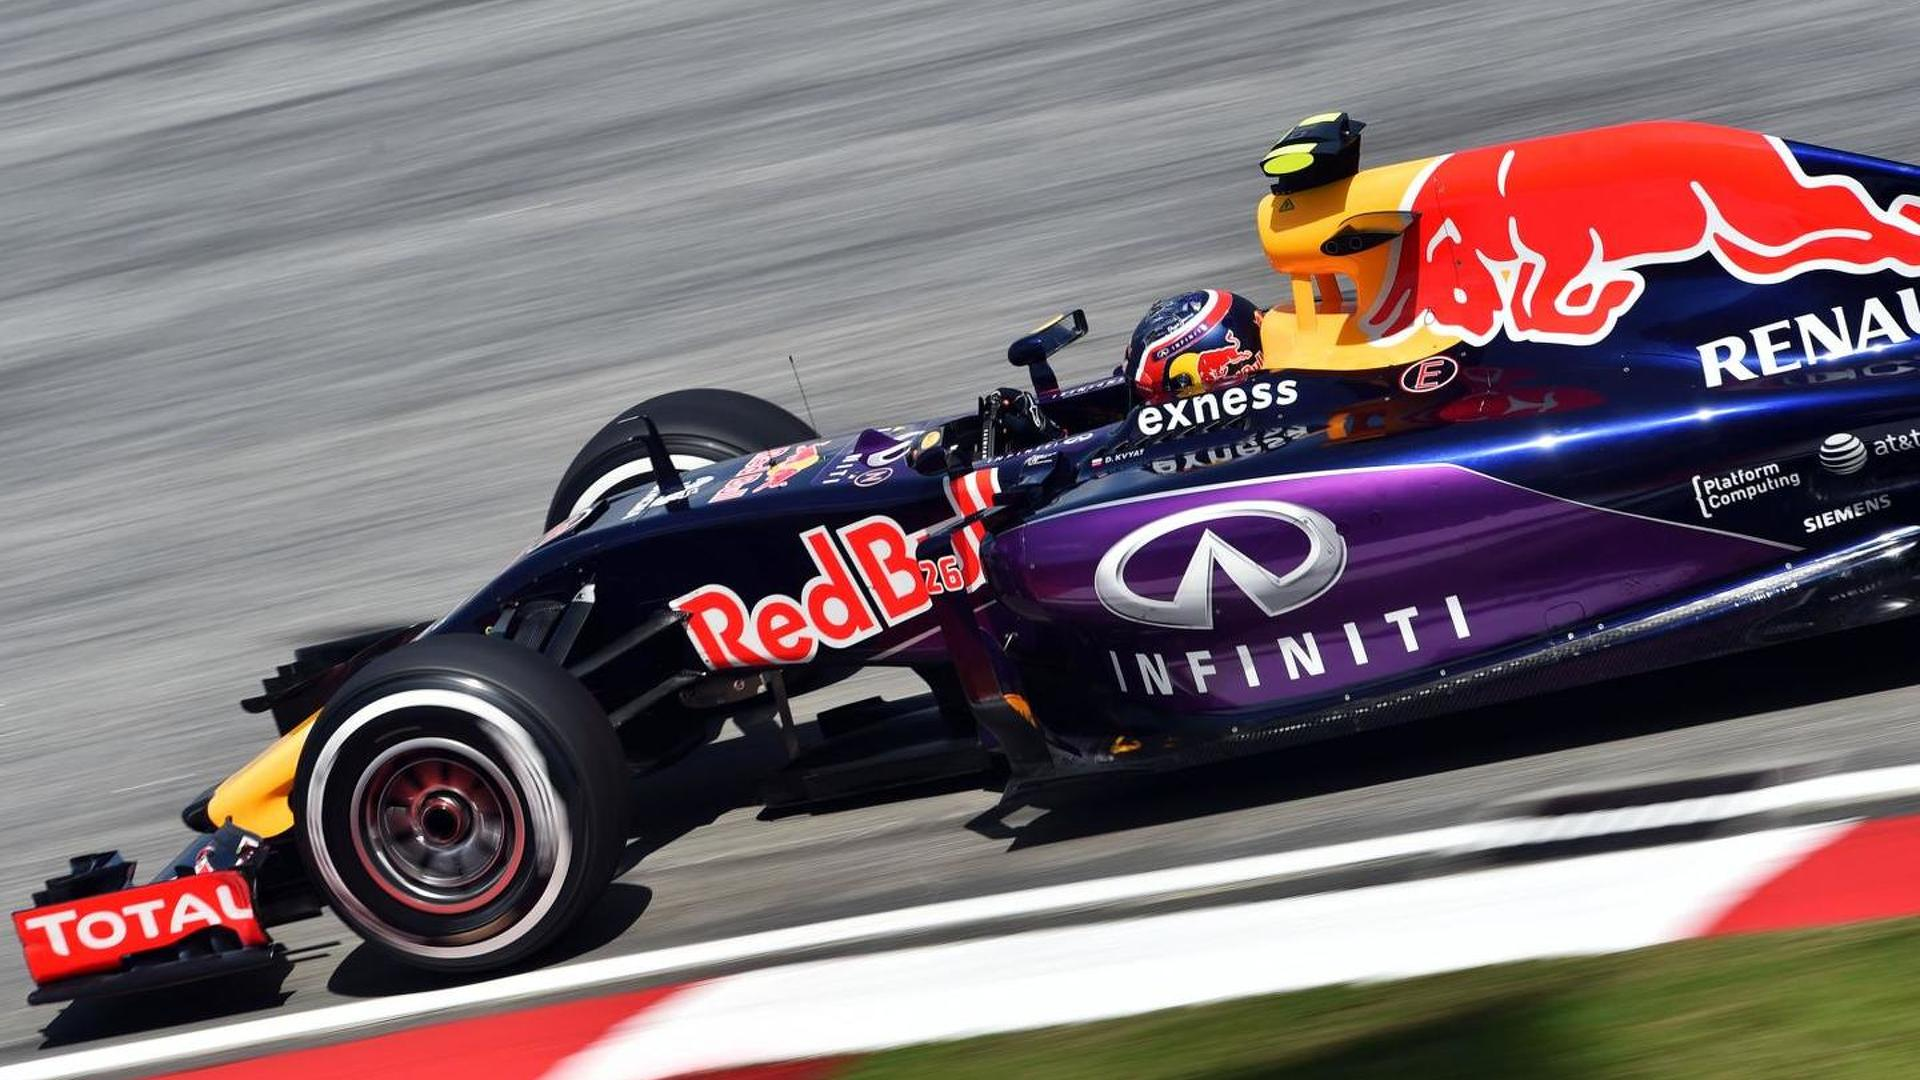 Tension high as Red Bull and Renault head for divorce